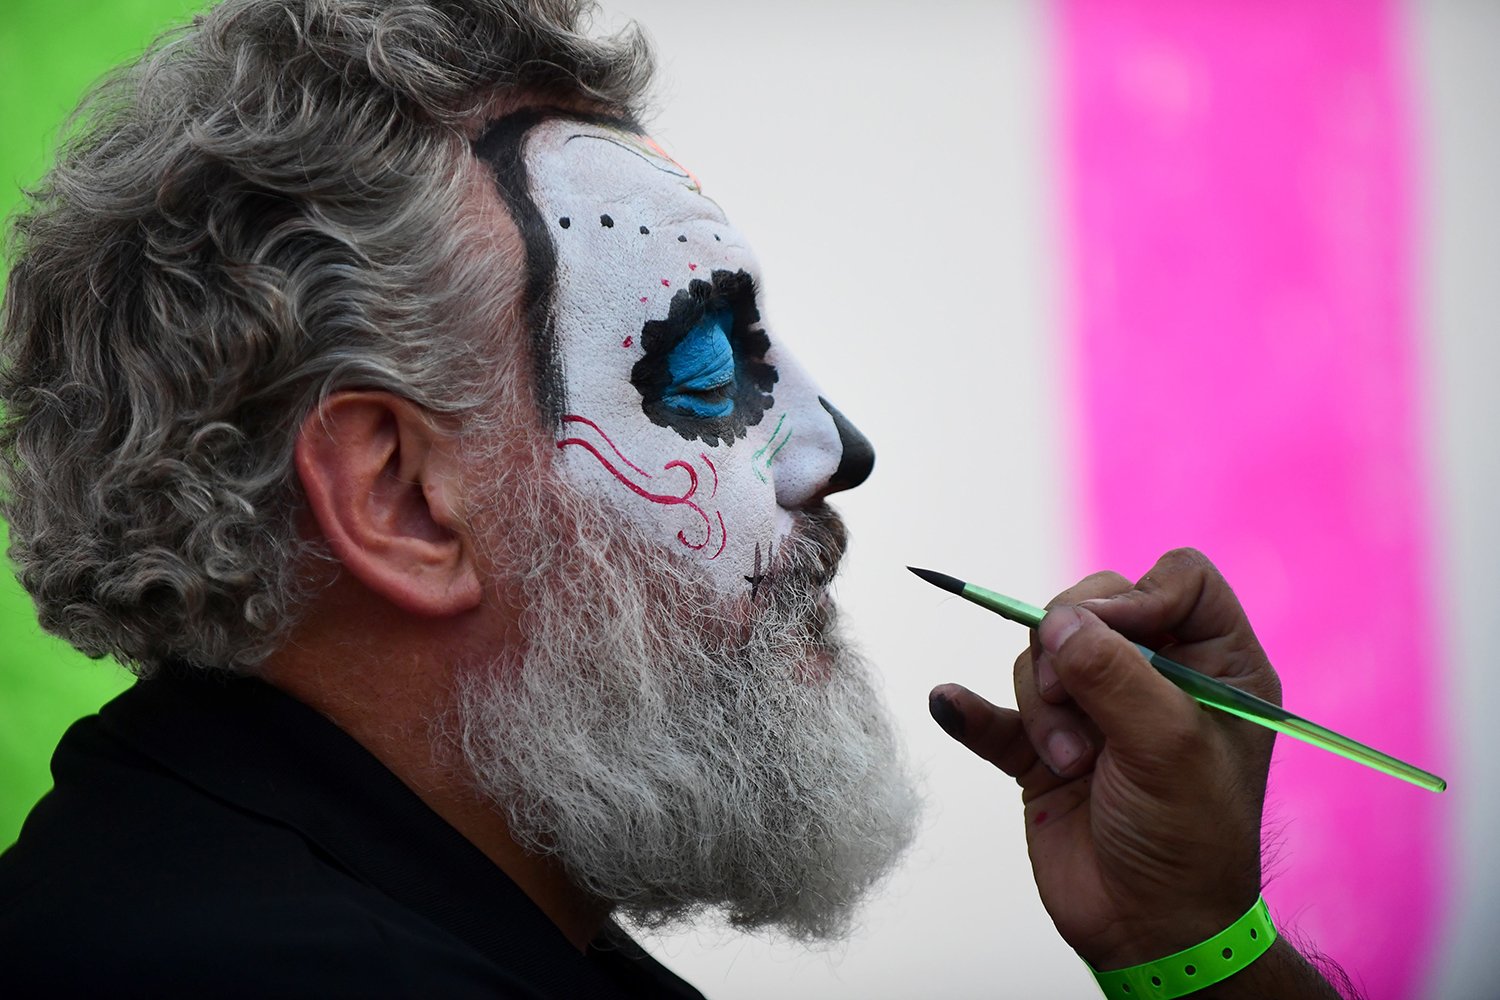 TOPSHOT - A man has his face painted during celebrations in the framework of the Day of the Dead at the Hermanos Rodriguez racetrack in Mexico City, on October 26, 2017 ahead of the week-end's Mexican Formula One Grand Prix. / AFP PHOTO / Pedro PARDO        (Photo credit should read PEDRO PARDO/AFP/Getty Images)